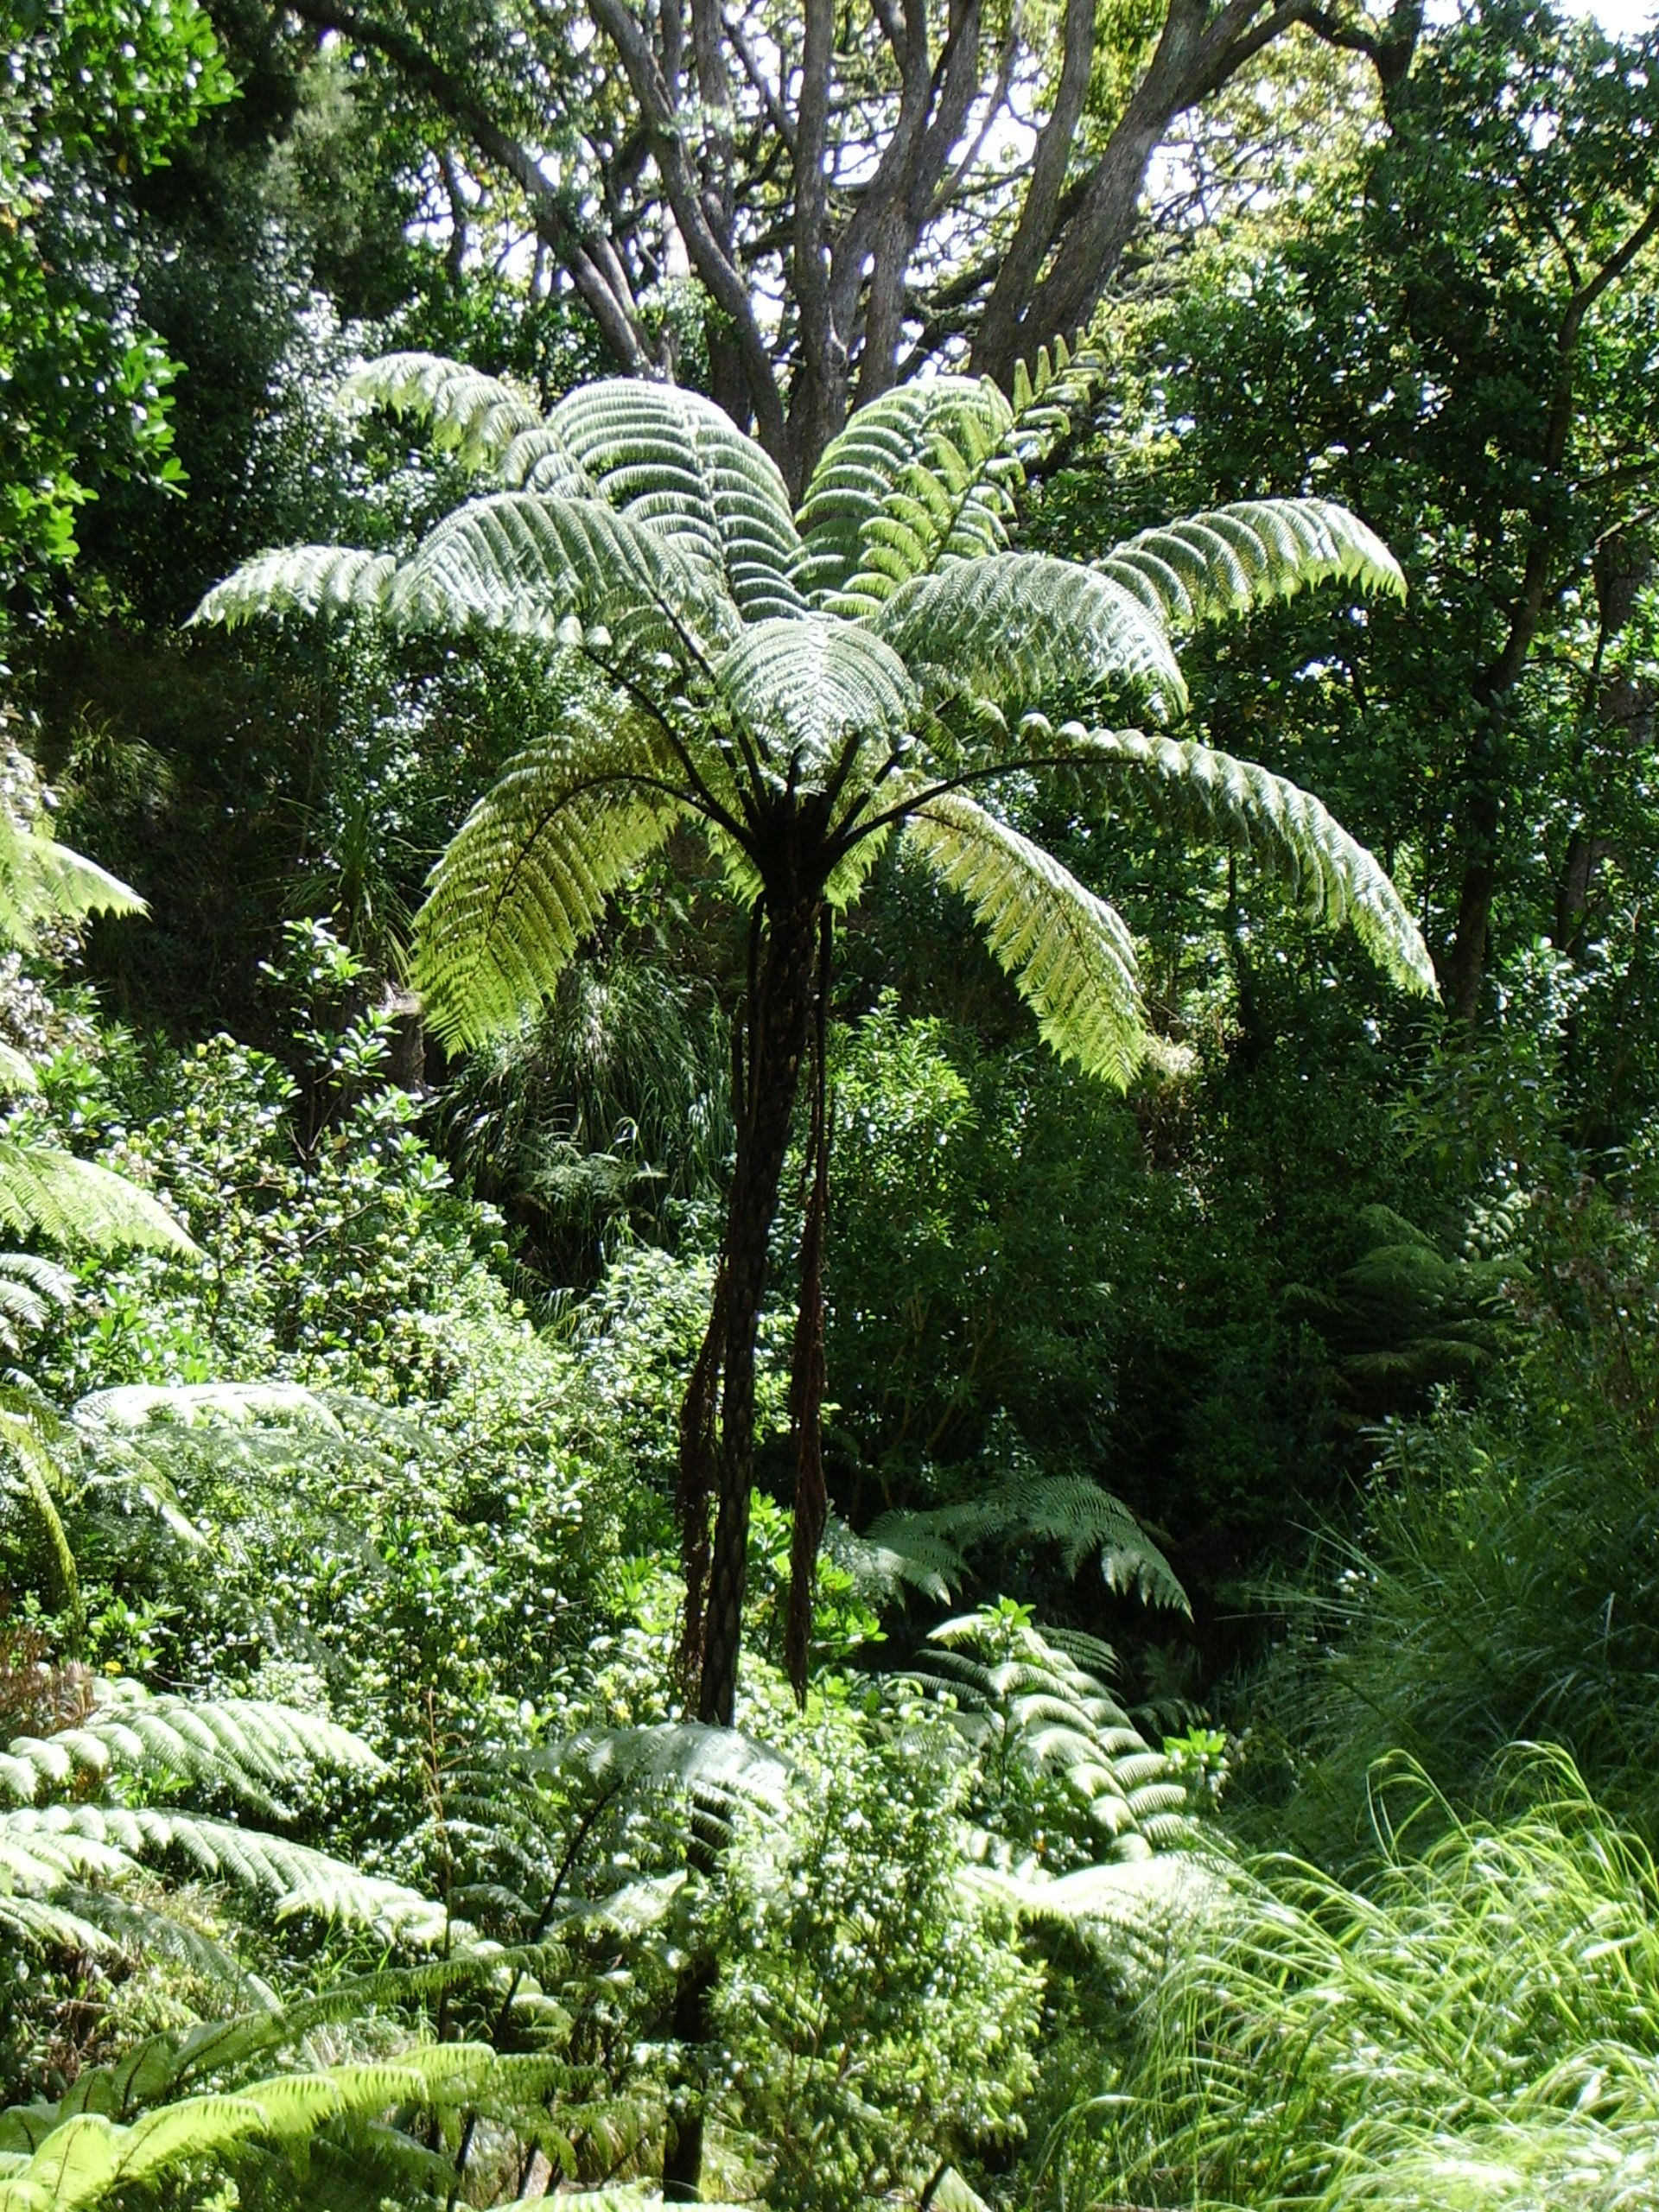 A black tree fern in the auckland domain tree fern